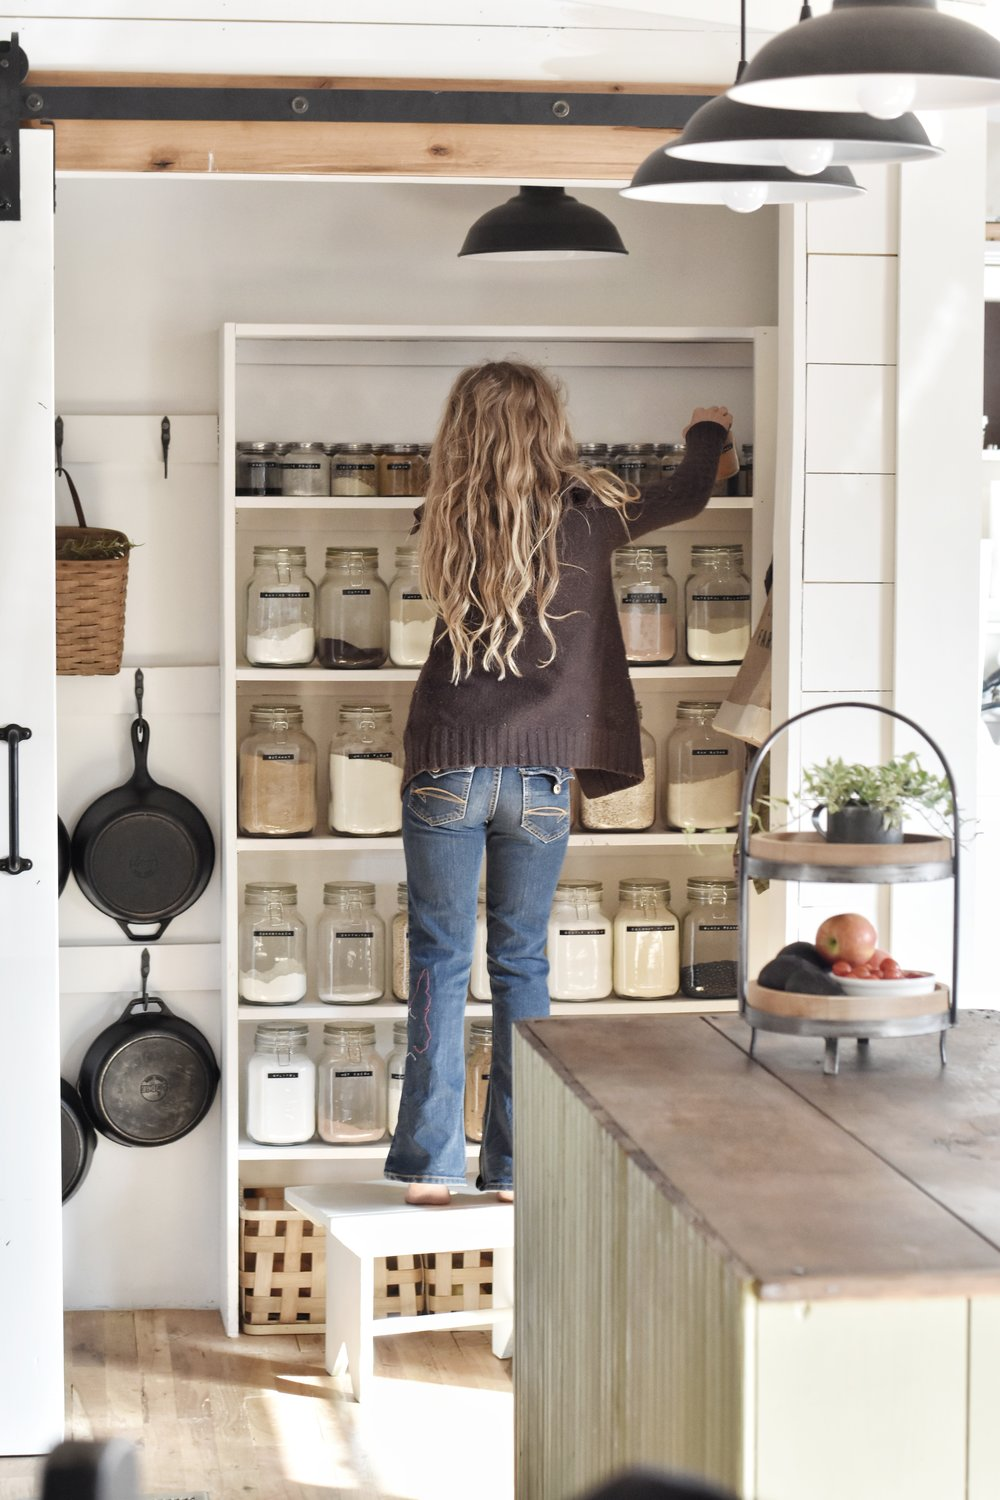 Pantry essentials for a well stocked kitchen | Rocky Hedge Farm